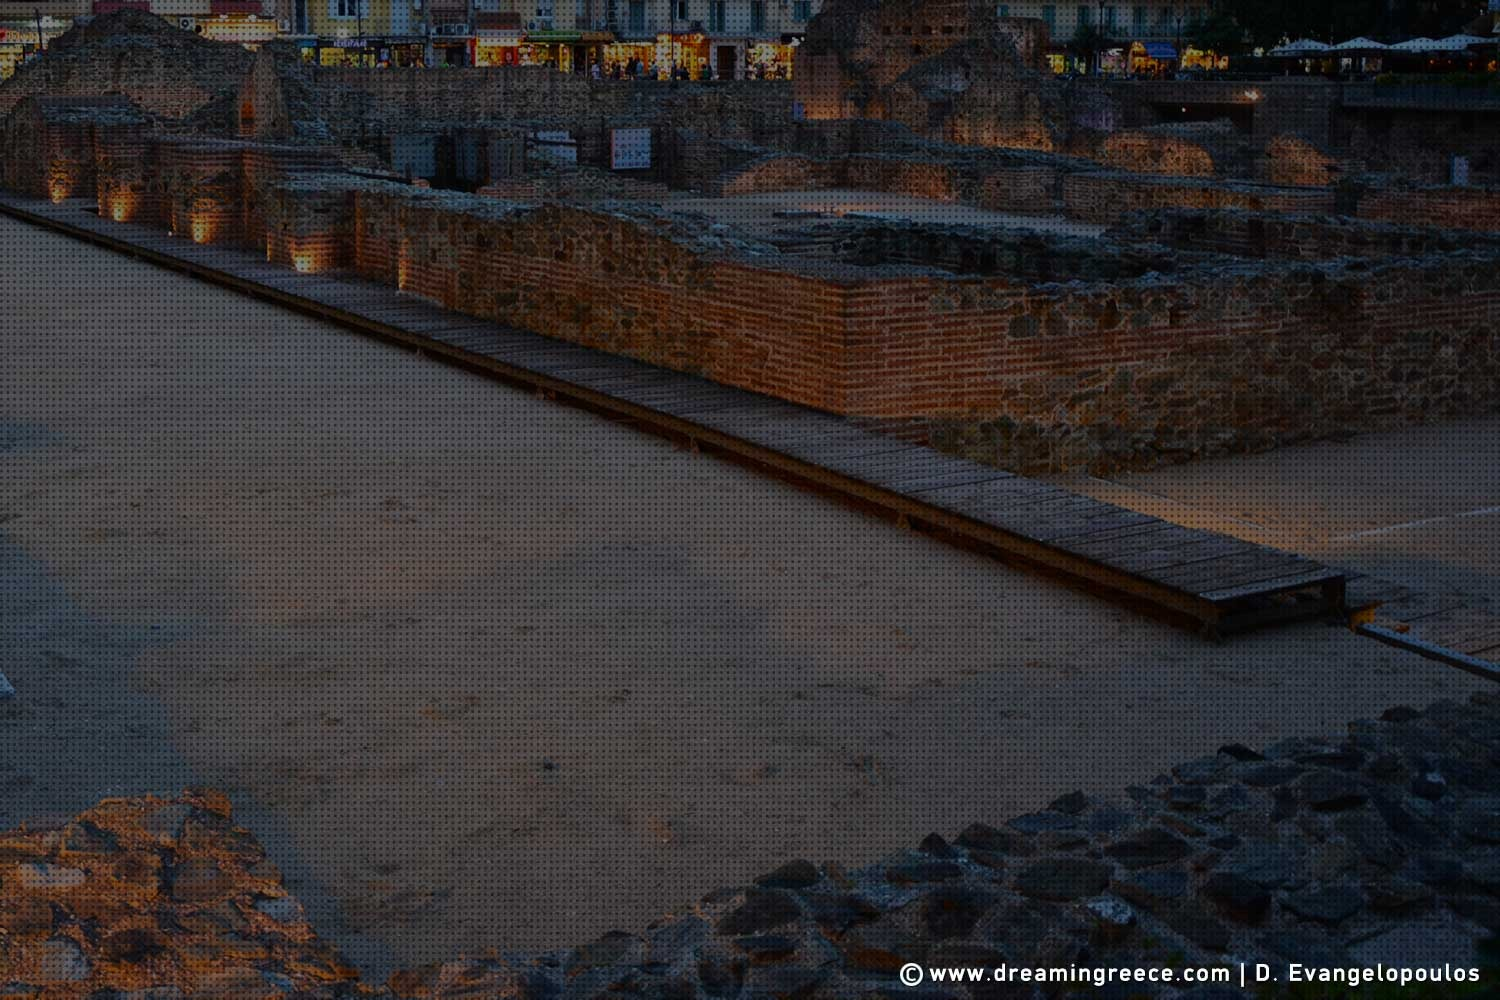 The Ancient Hippodrome Thessaloniki. Archaeological sites in Greece